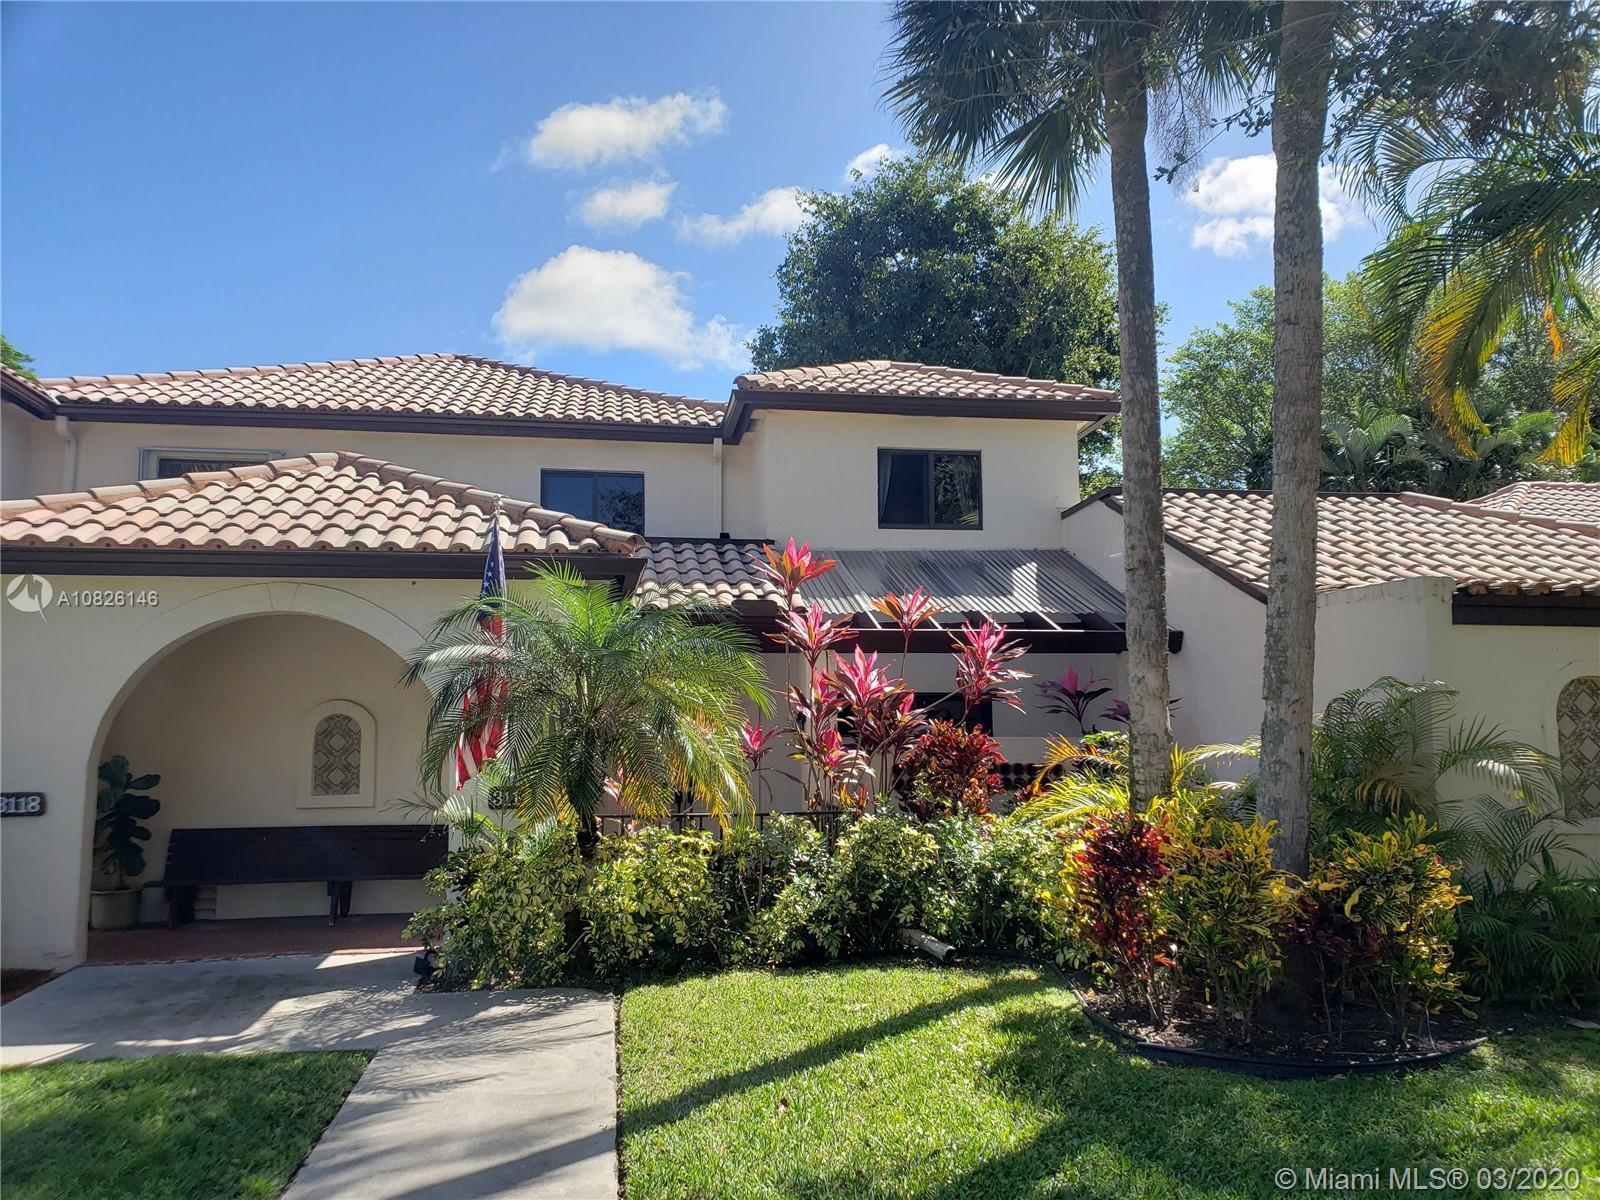 Windwood Community located just 1.5 miles from the beach is a 24 hr security gated community. This S